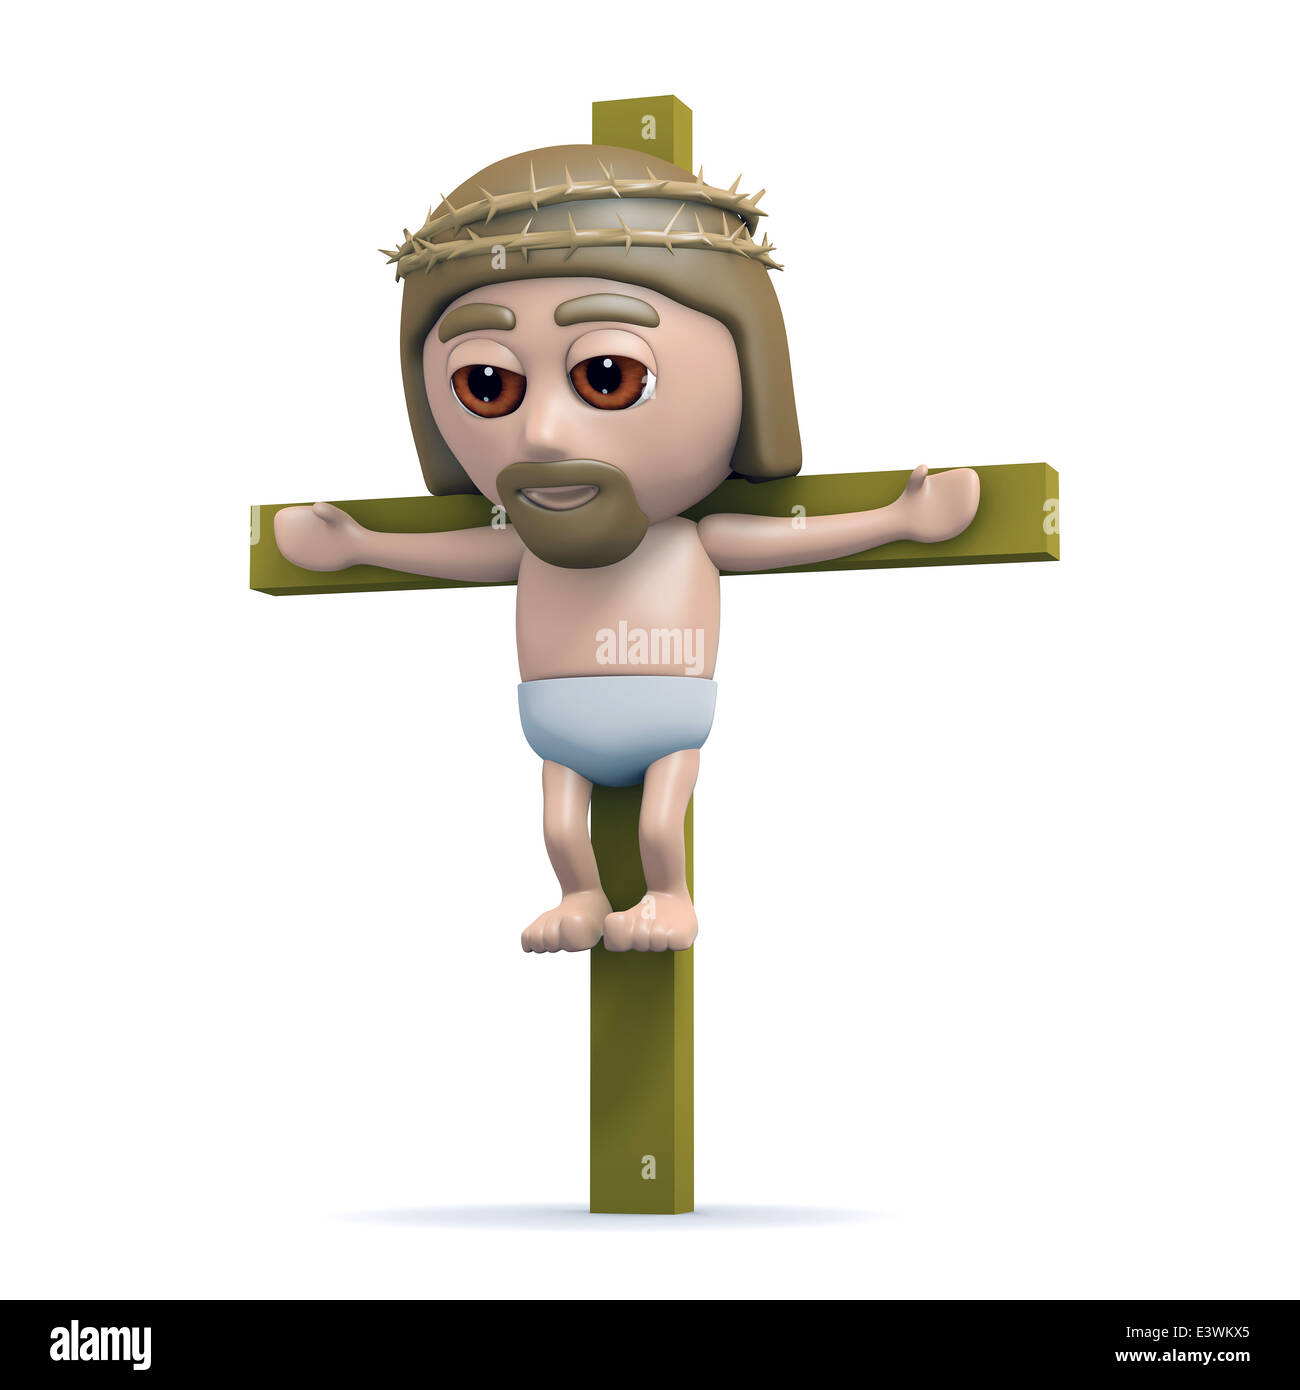 3d Jesus Christ On The Cross Wearing A Crown Of Thorns Stock Photo Alamy Download crown thorns images and photos. https www alamy com stock photo 3d jesus christ on the cross wearing a crown of thorns 71249869 html